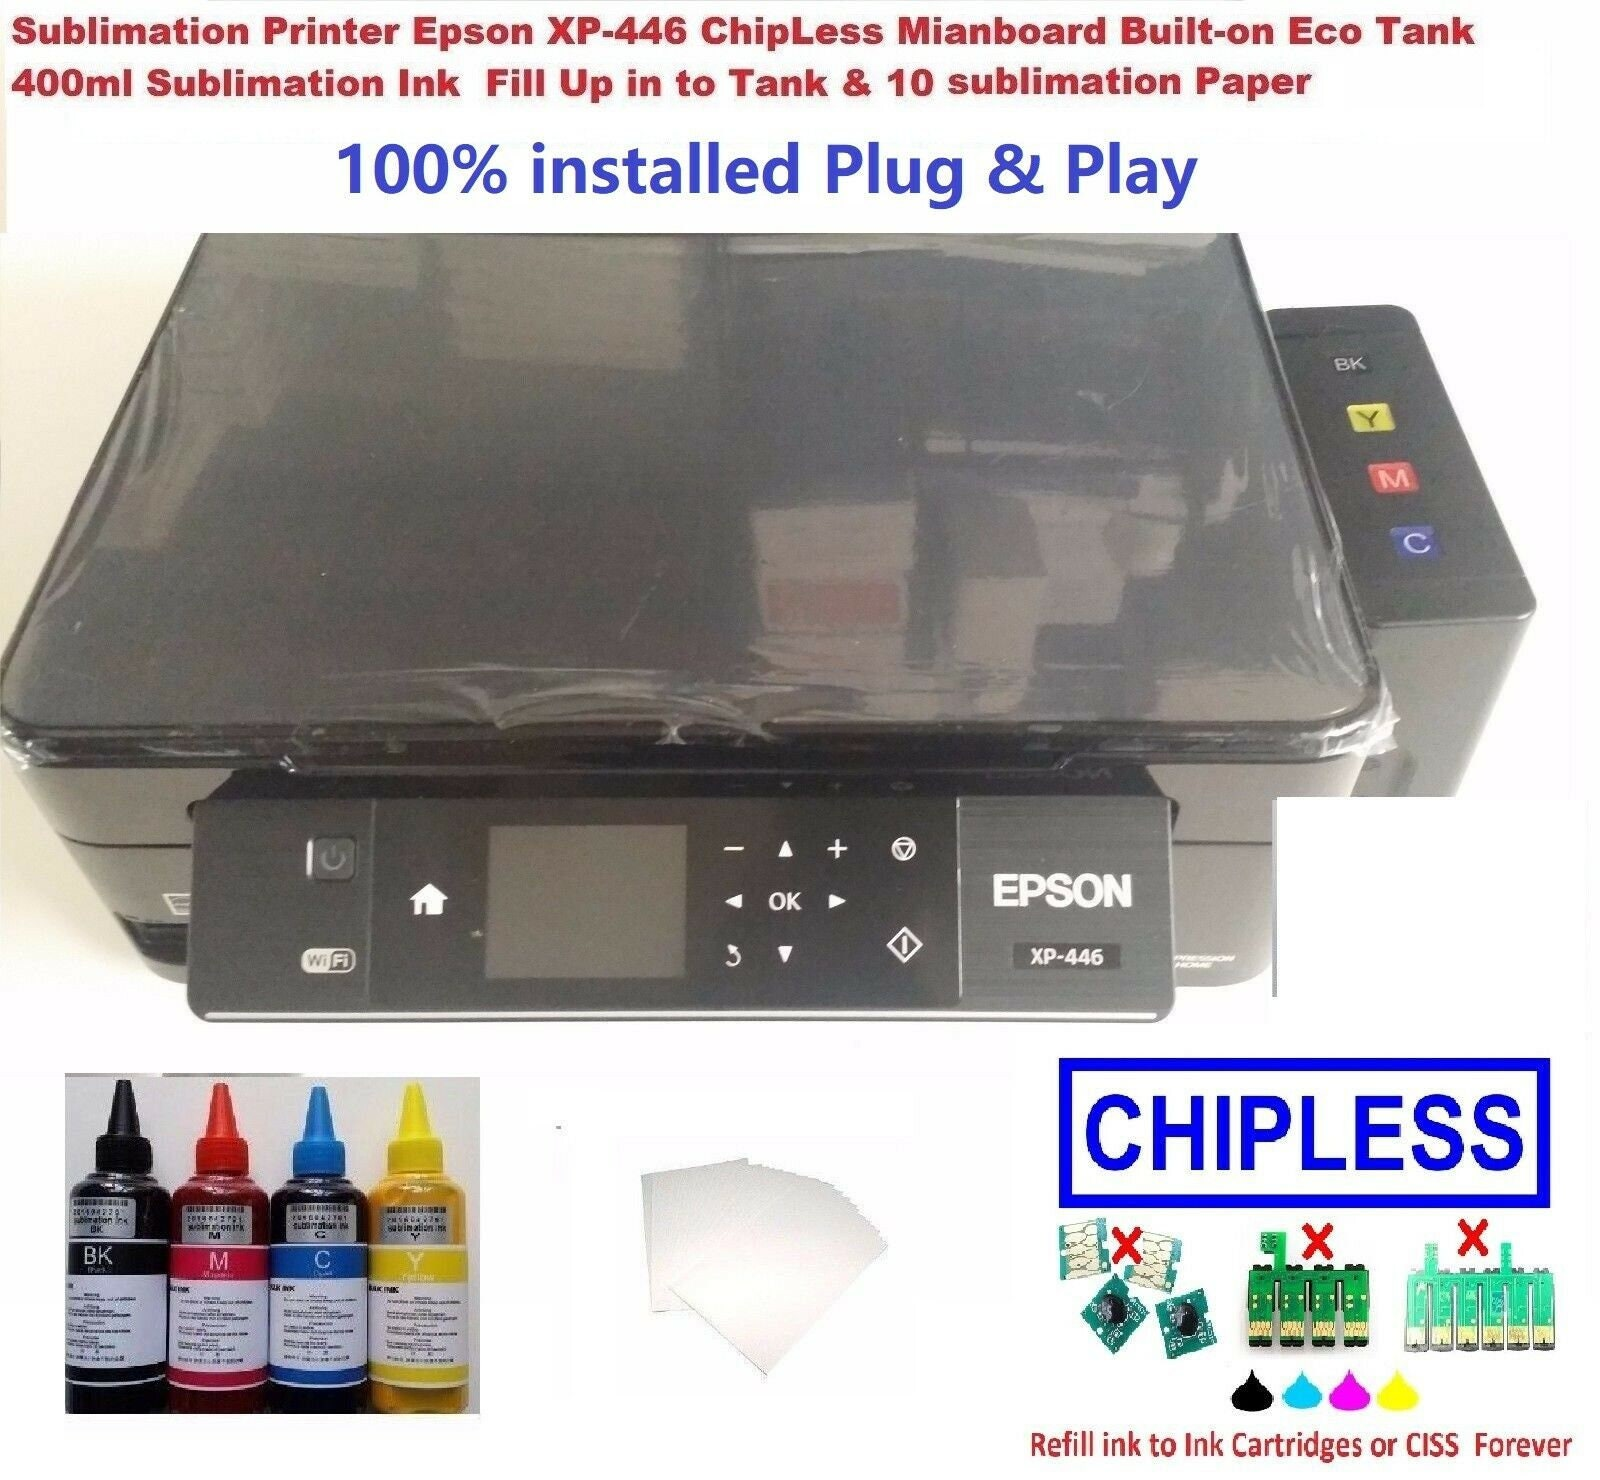 Sublimation Epson XP-446 / 442 ChipLess Mianboard Built-on Tank with Ink &  Paper